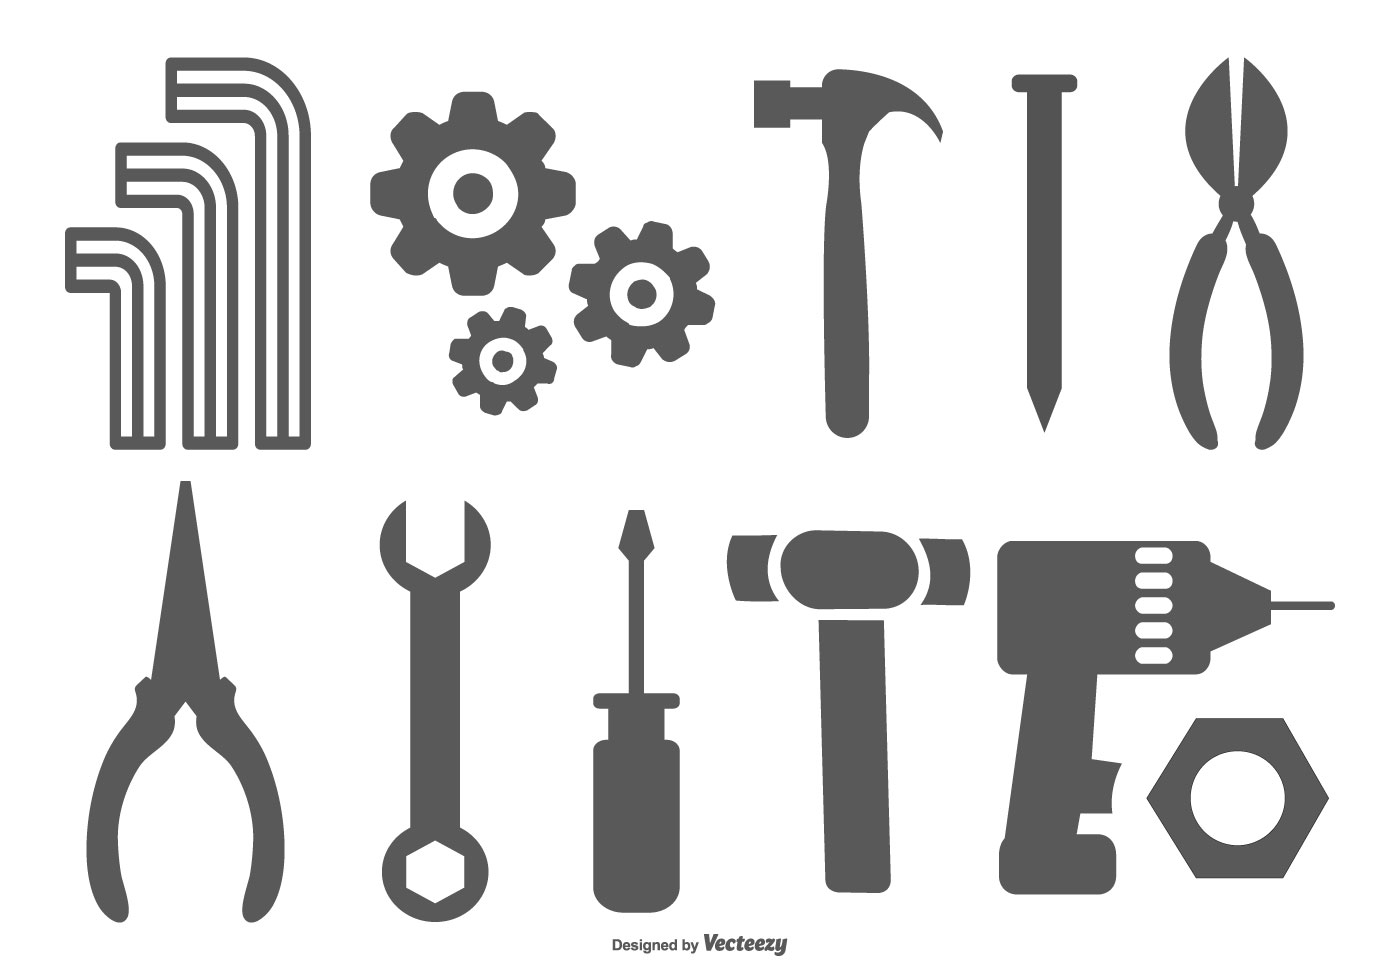 tool free vector art 4140 free downloads